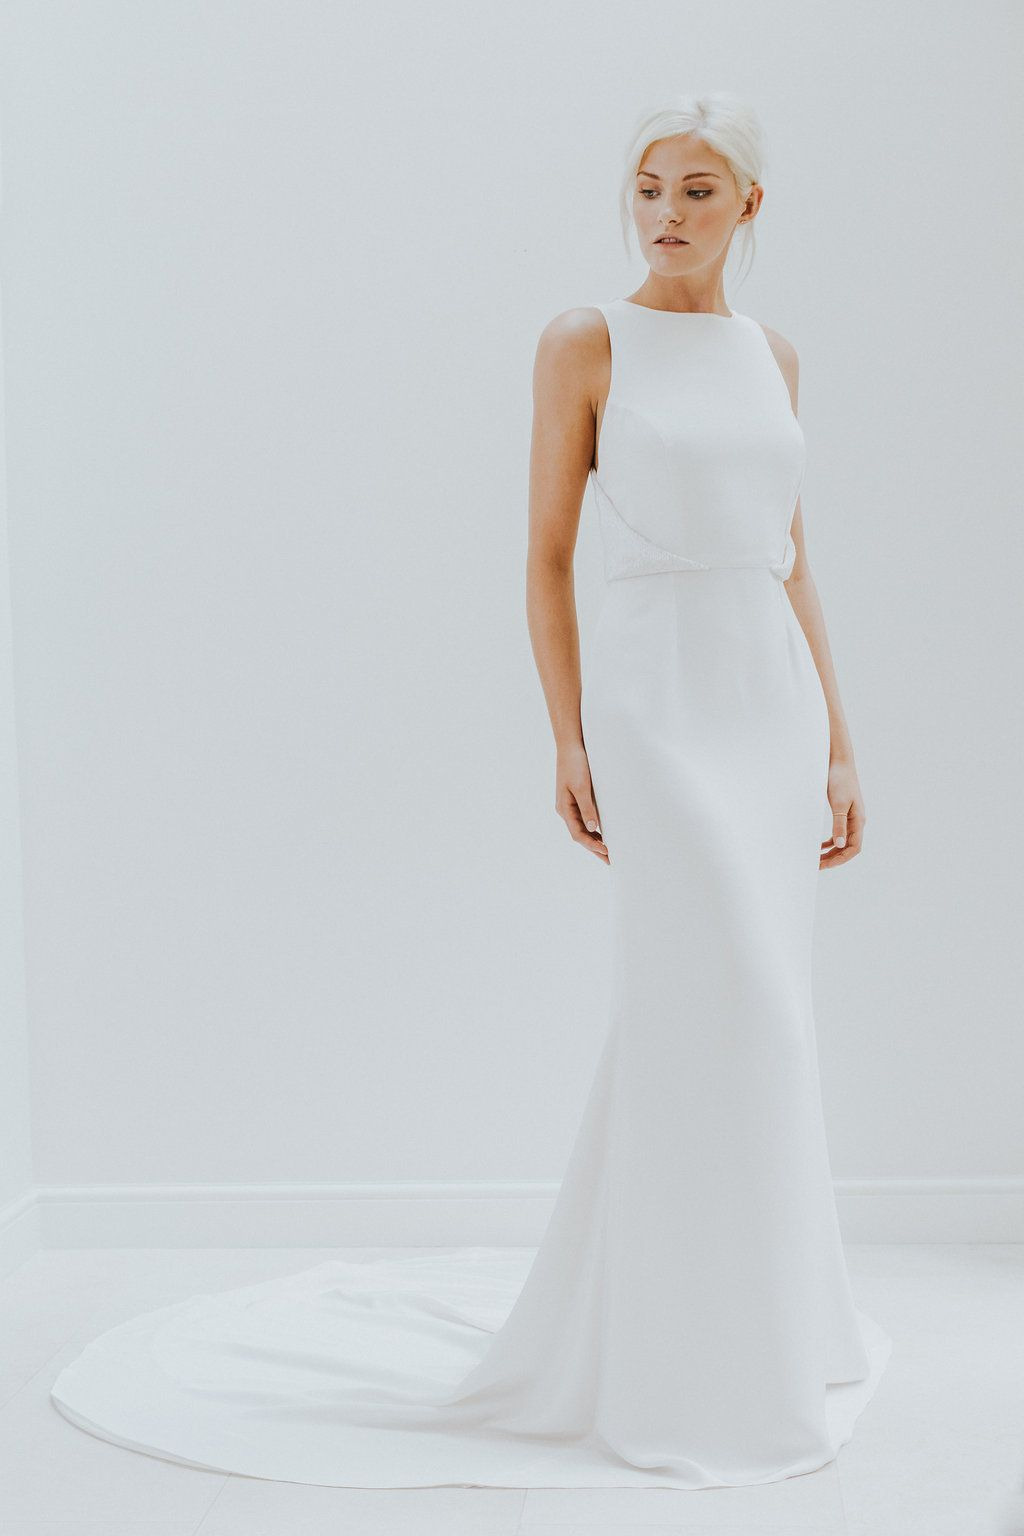 Charlotte Simpson Bridal | Simple weddings, Charlotte and Bridal gowns